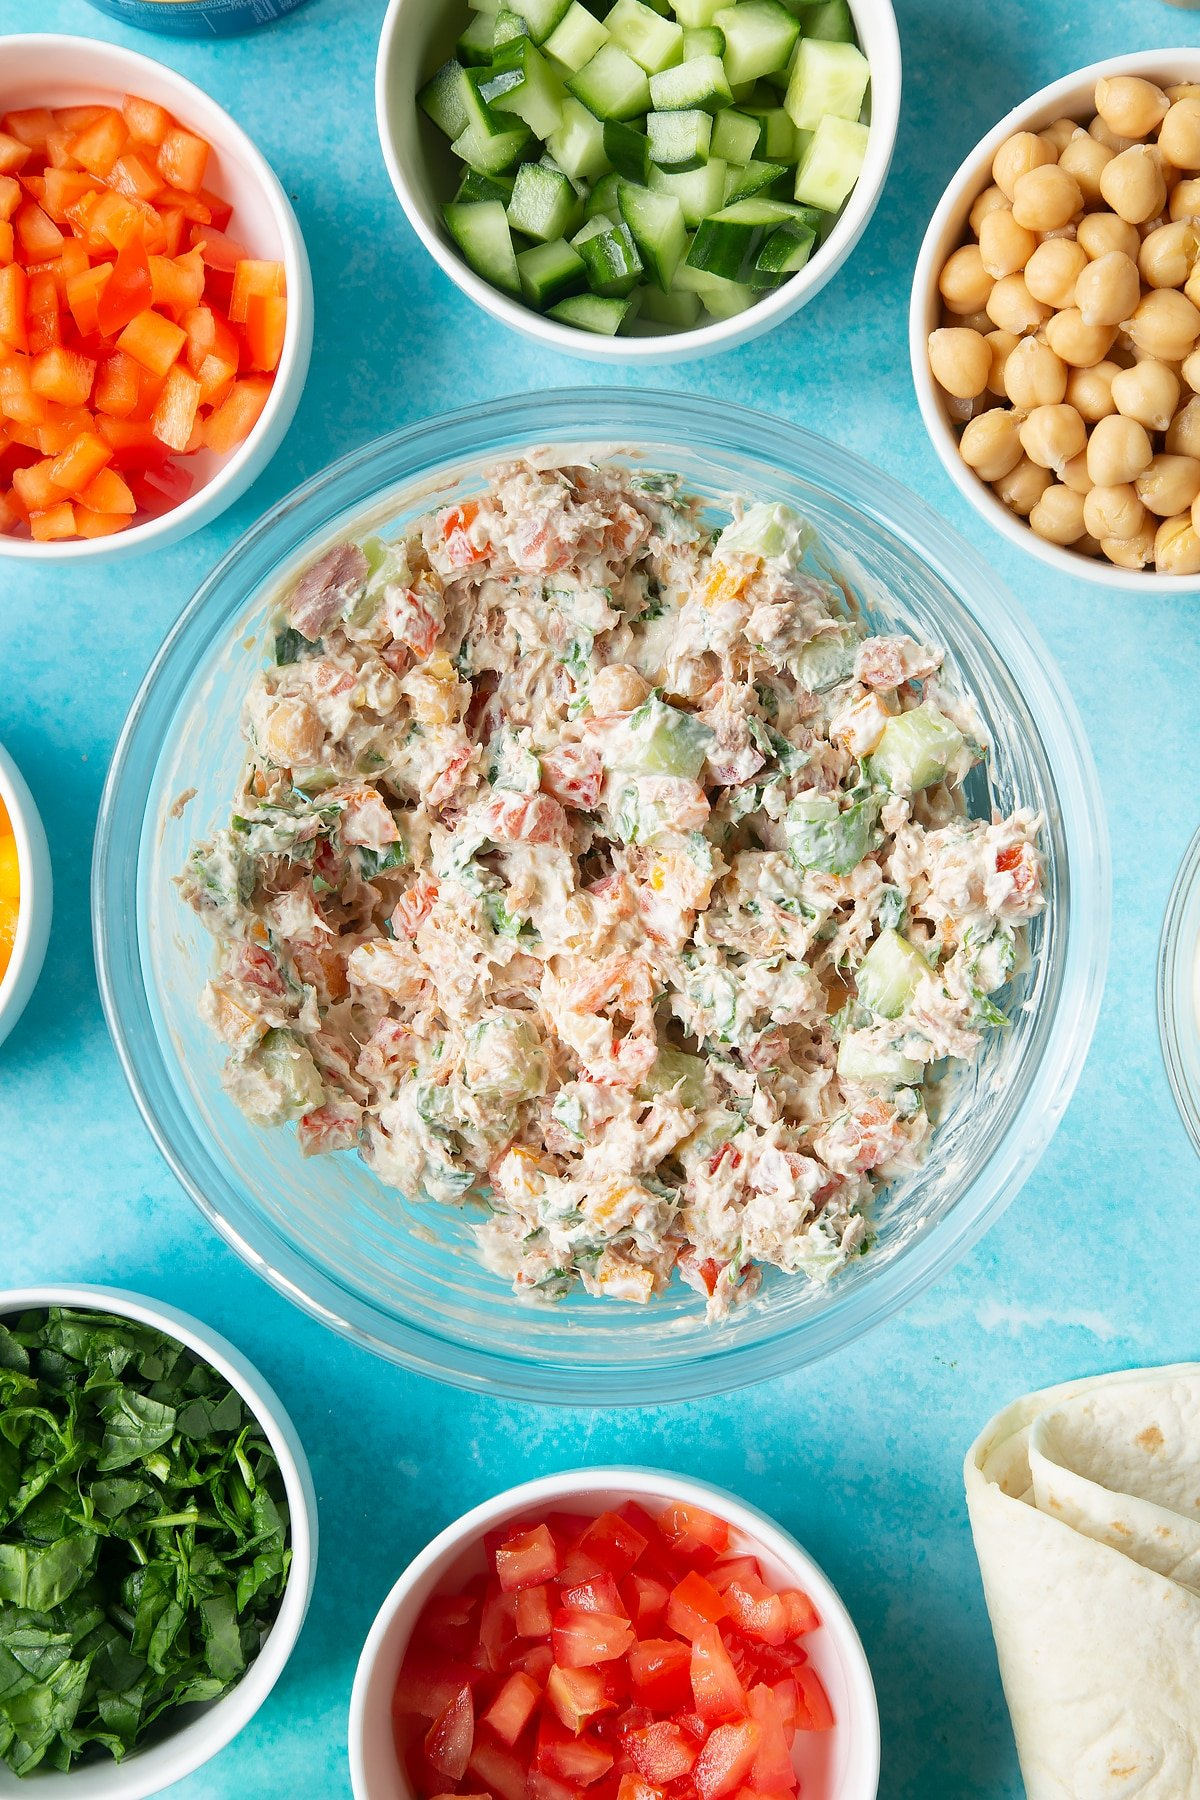 A mix of cream cheese, tuna and veg in a bowl. Ingredients to make tuna pinwheels surround the bowl.